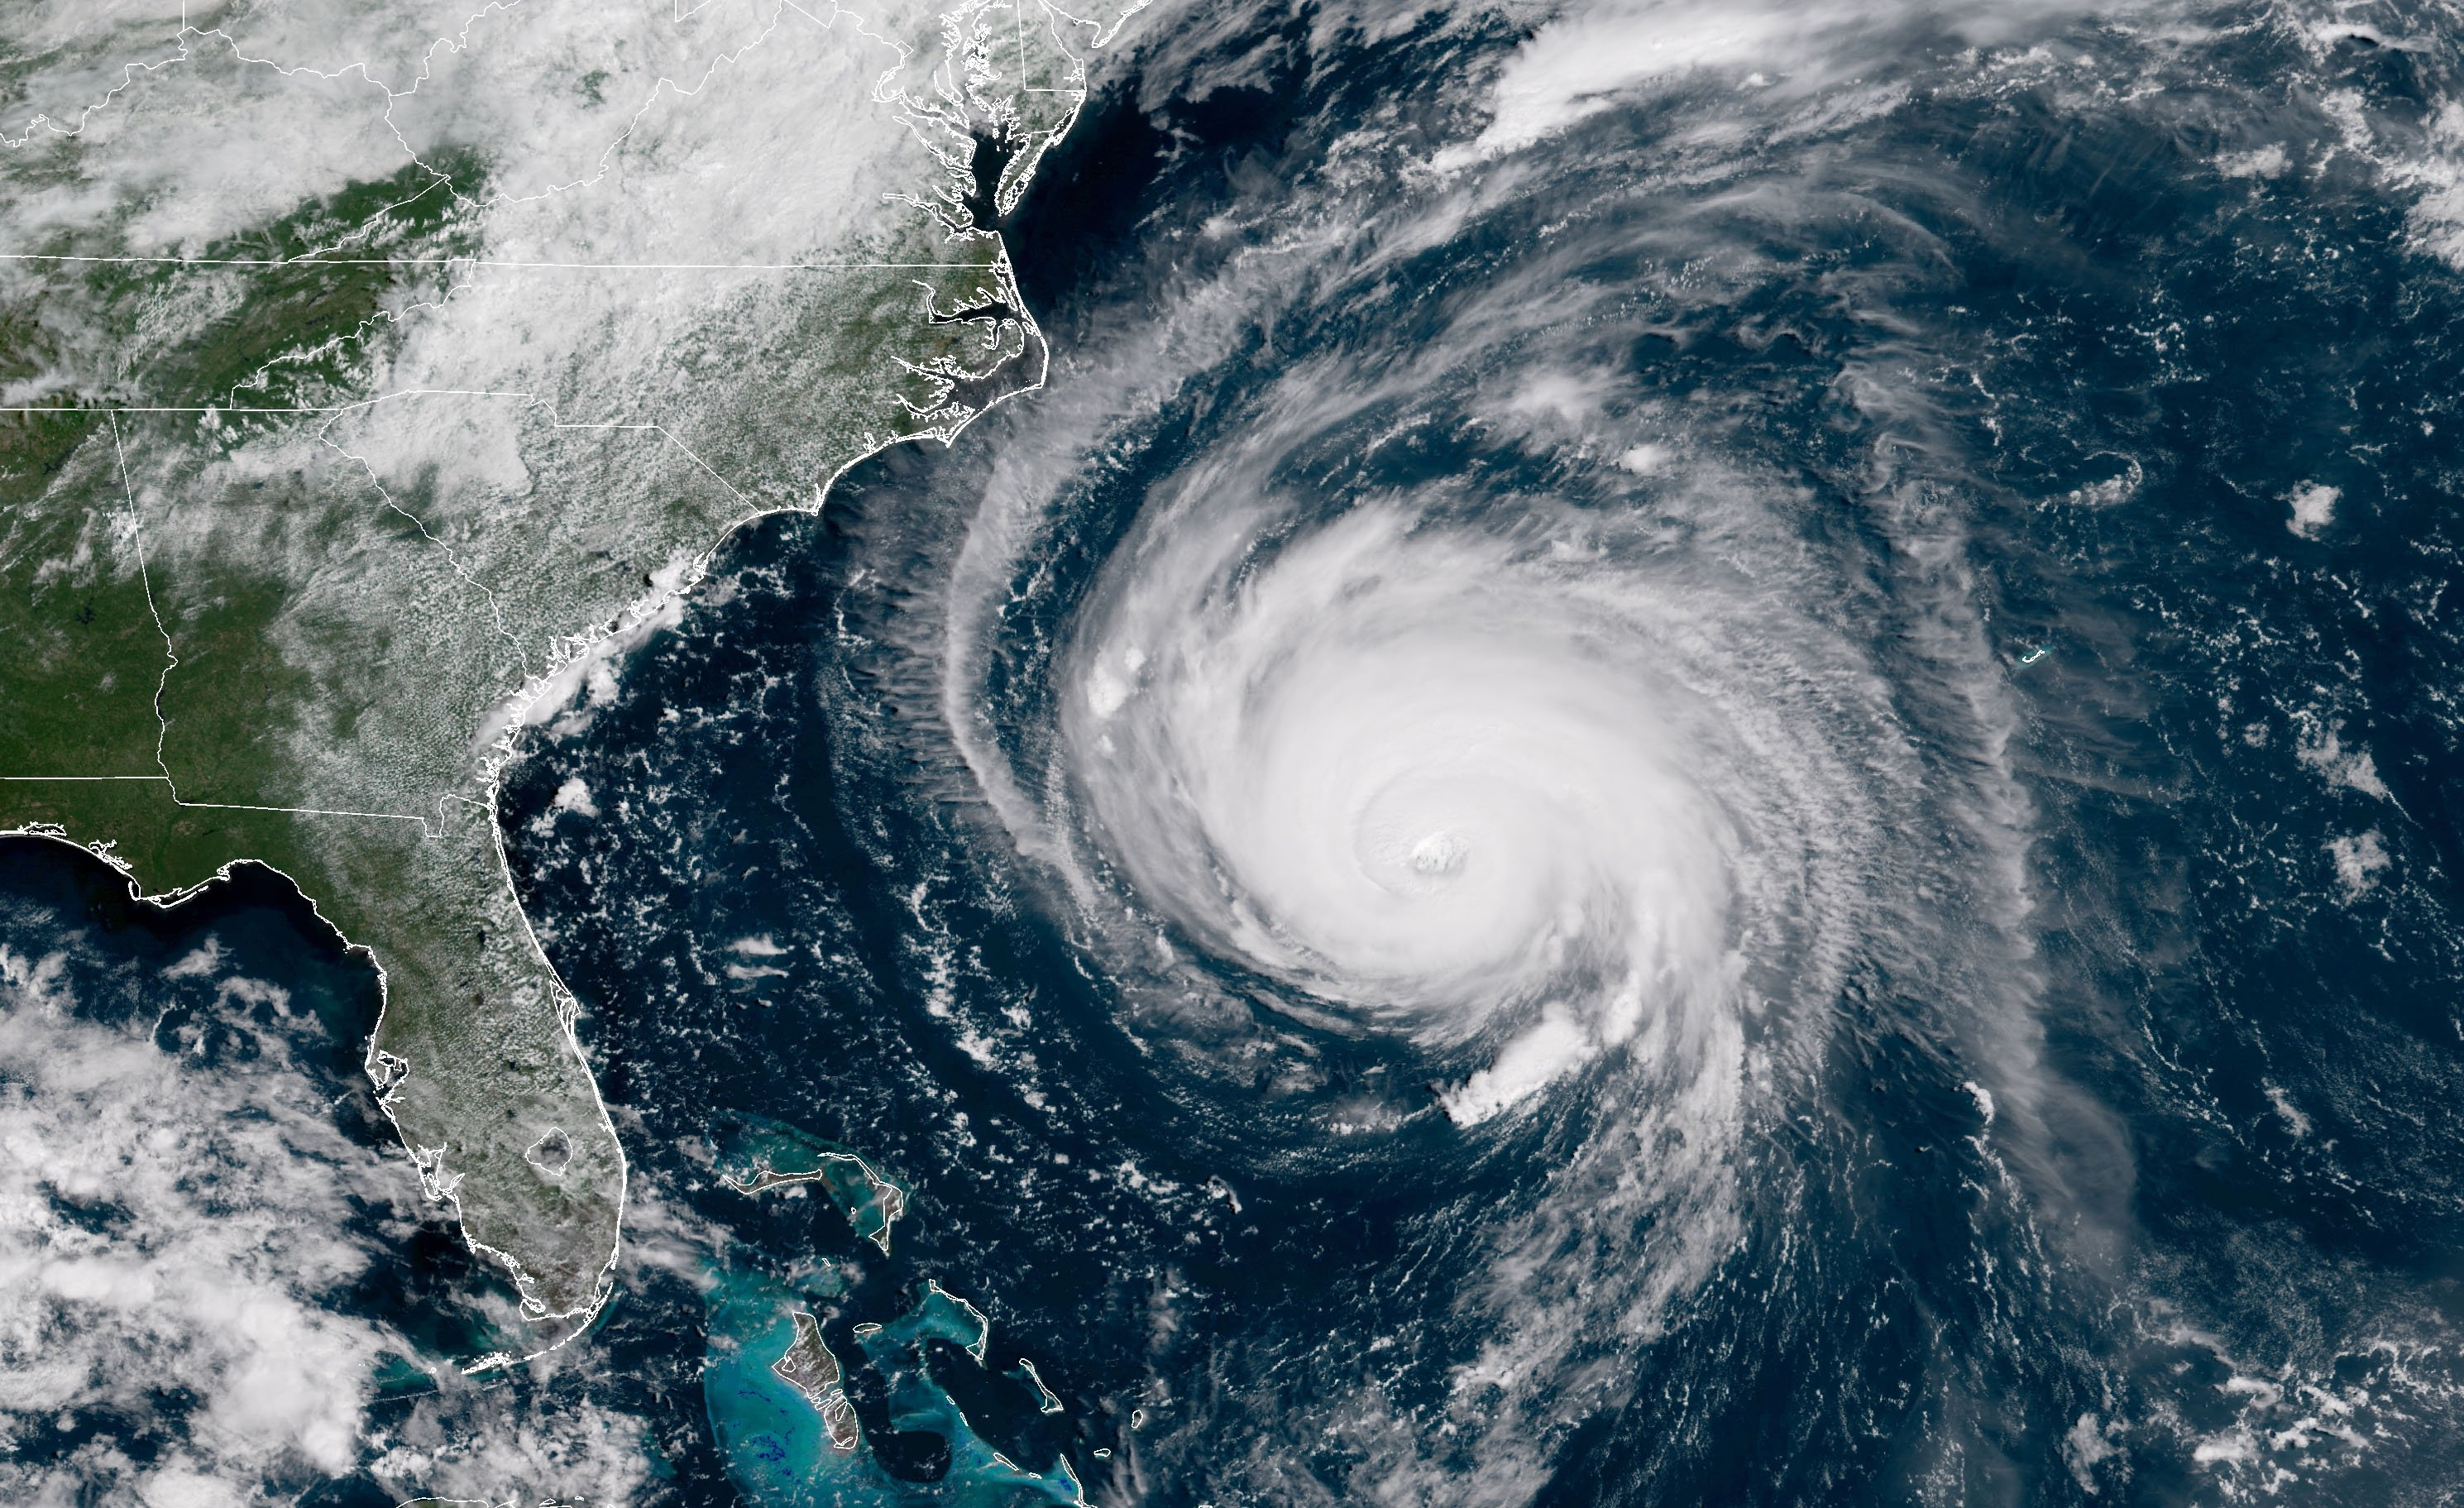 BoatUS offers updated Hurricane Preparation Guide